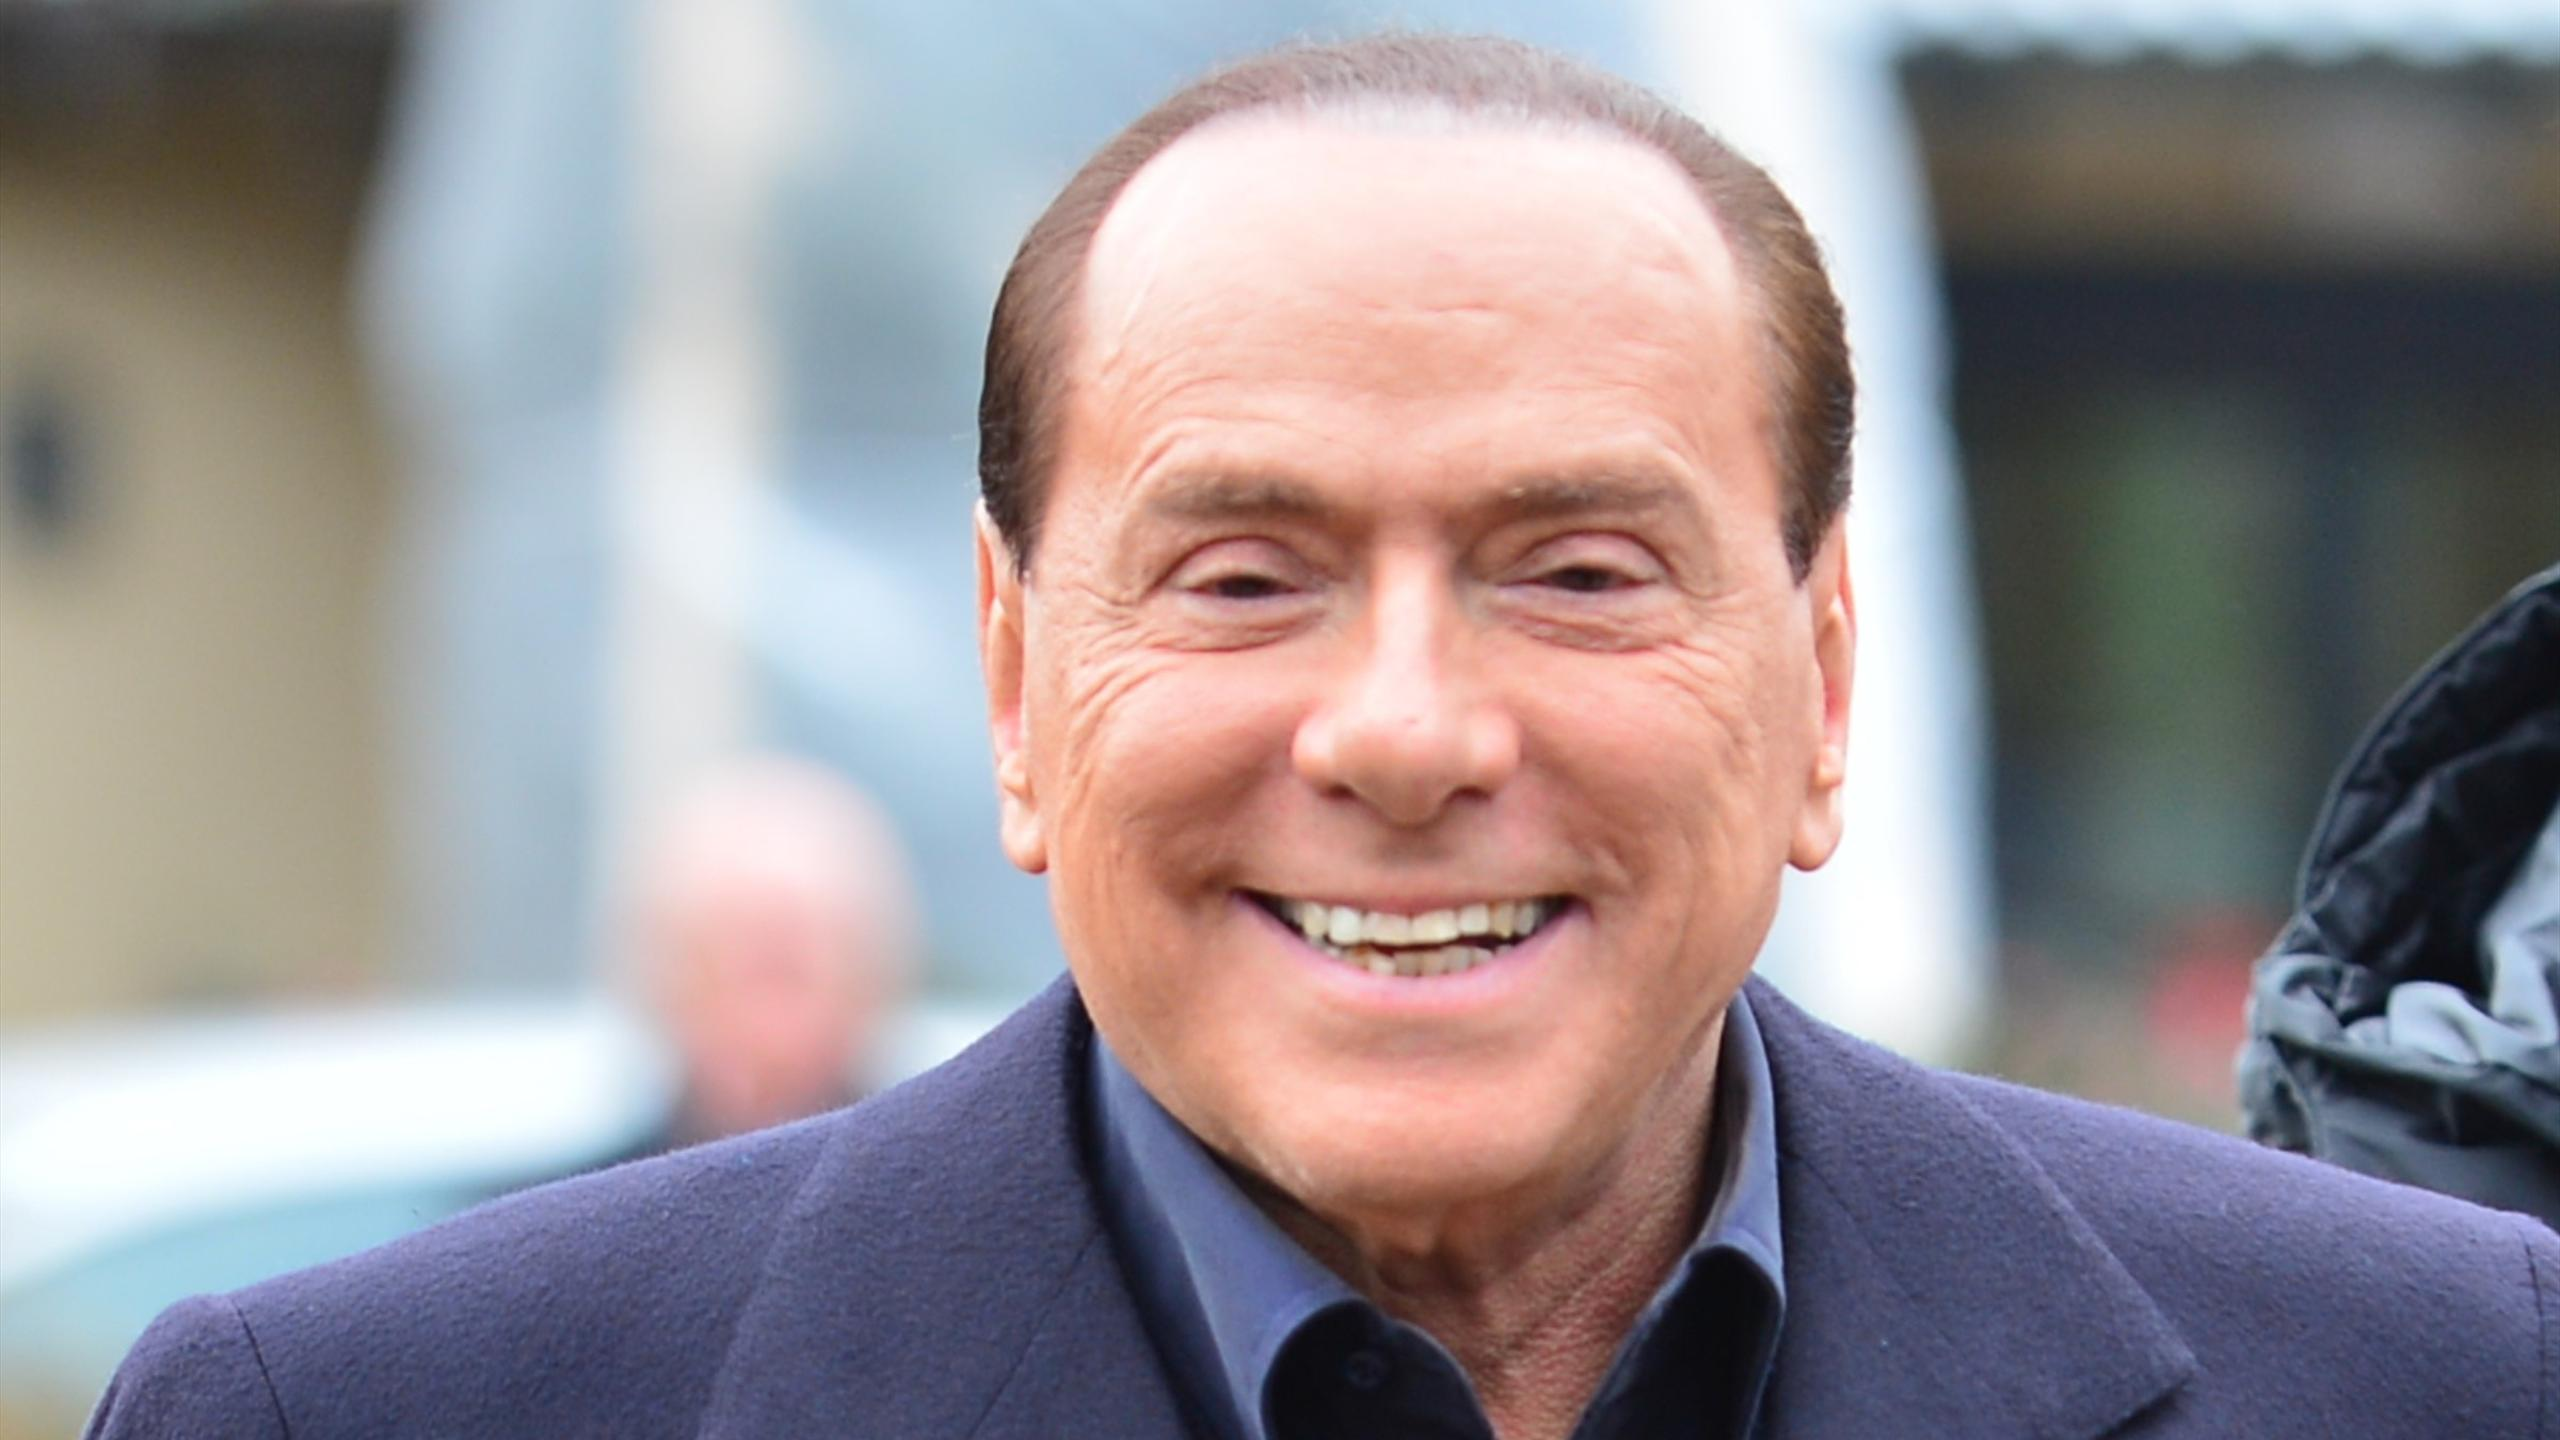 Italy sexism row: Silvio Berlusconi says being mayor is not a ...